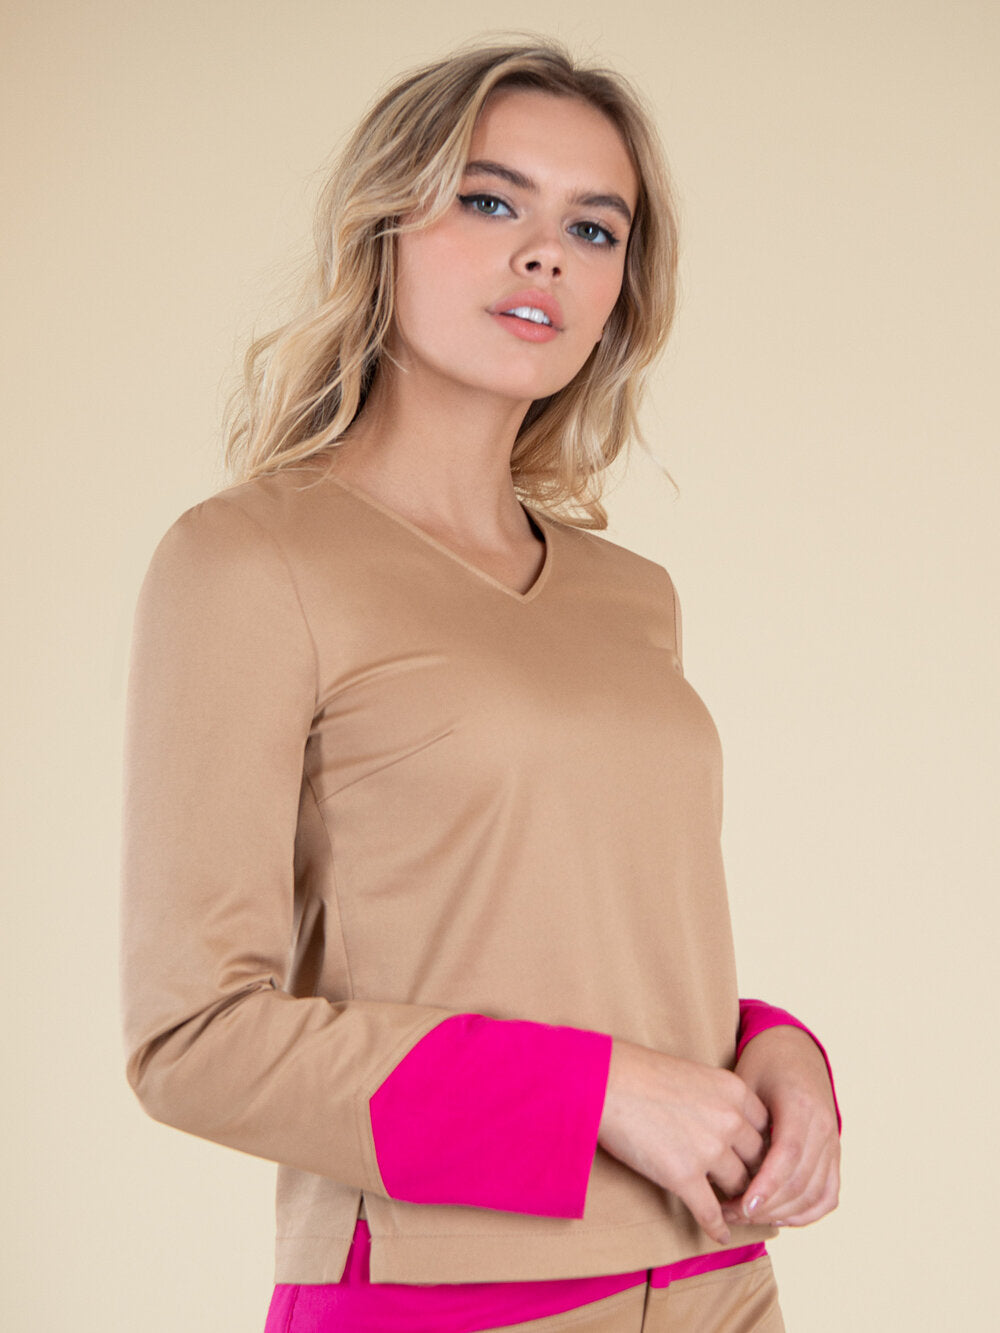 Woman wearing a beige blouse with bright pink elements on the sleeves